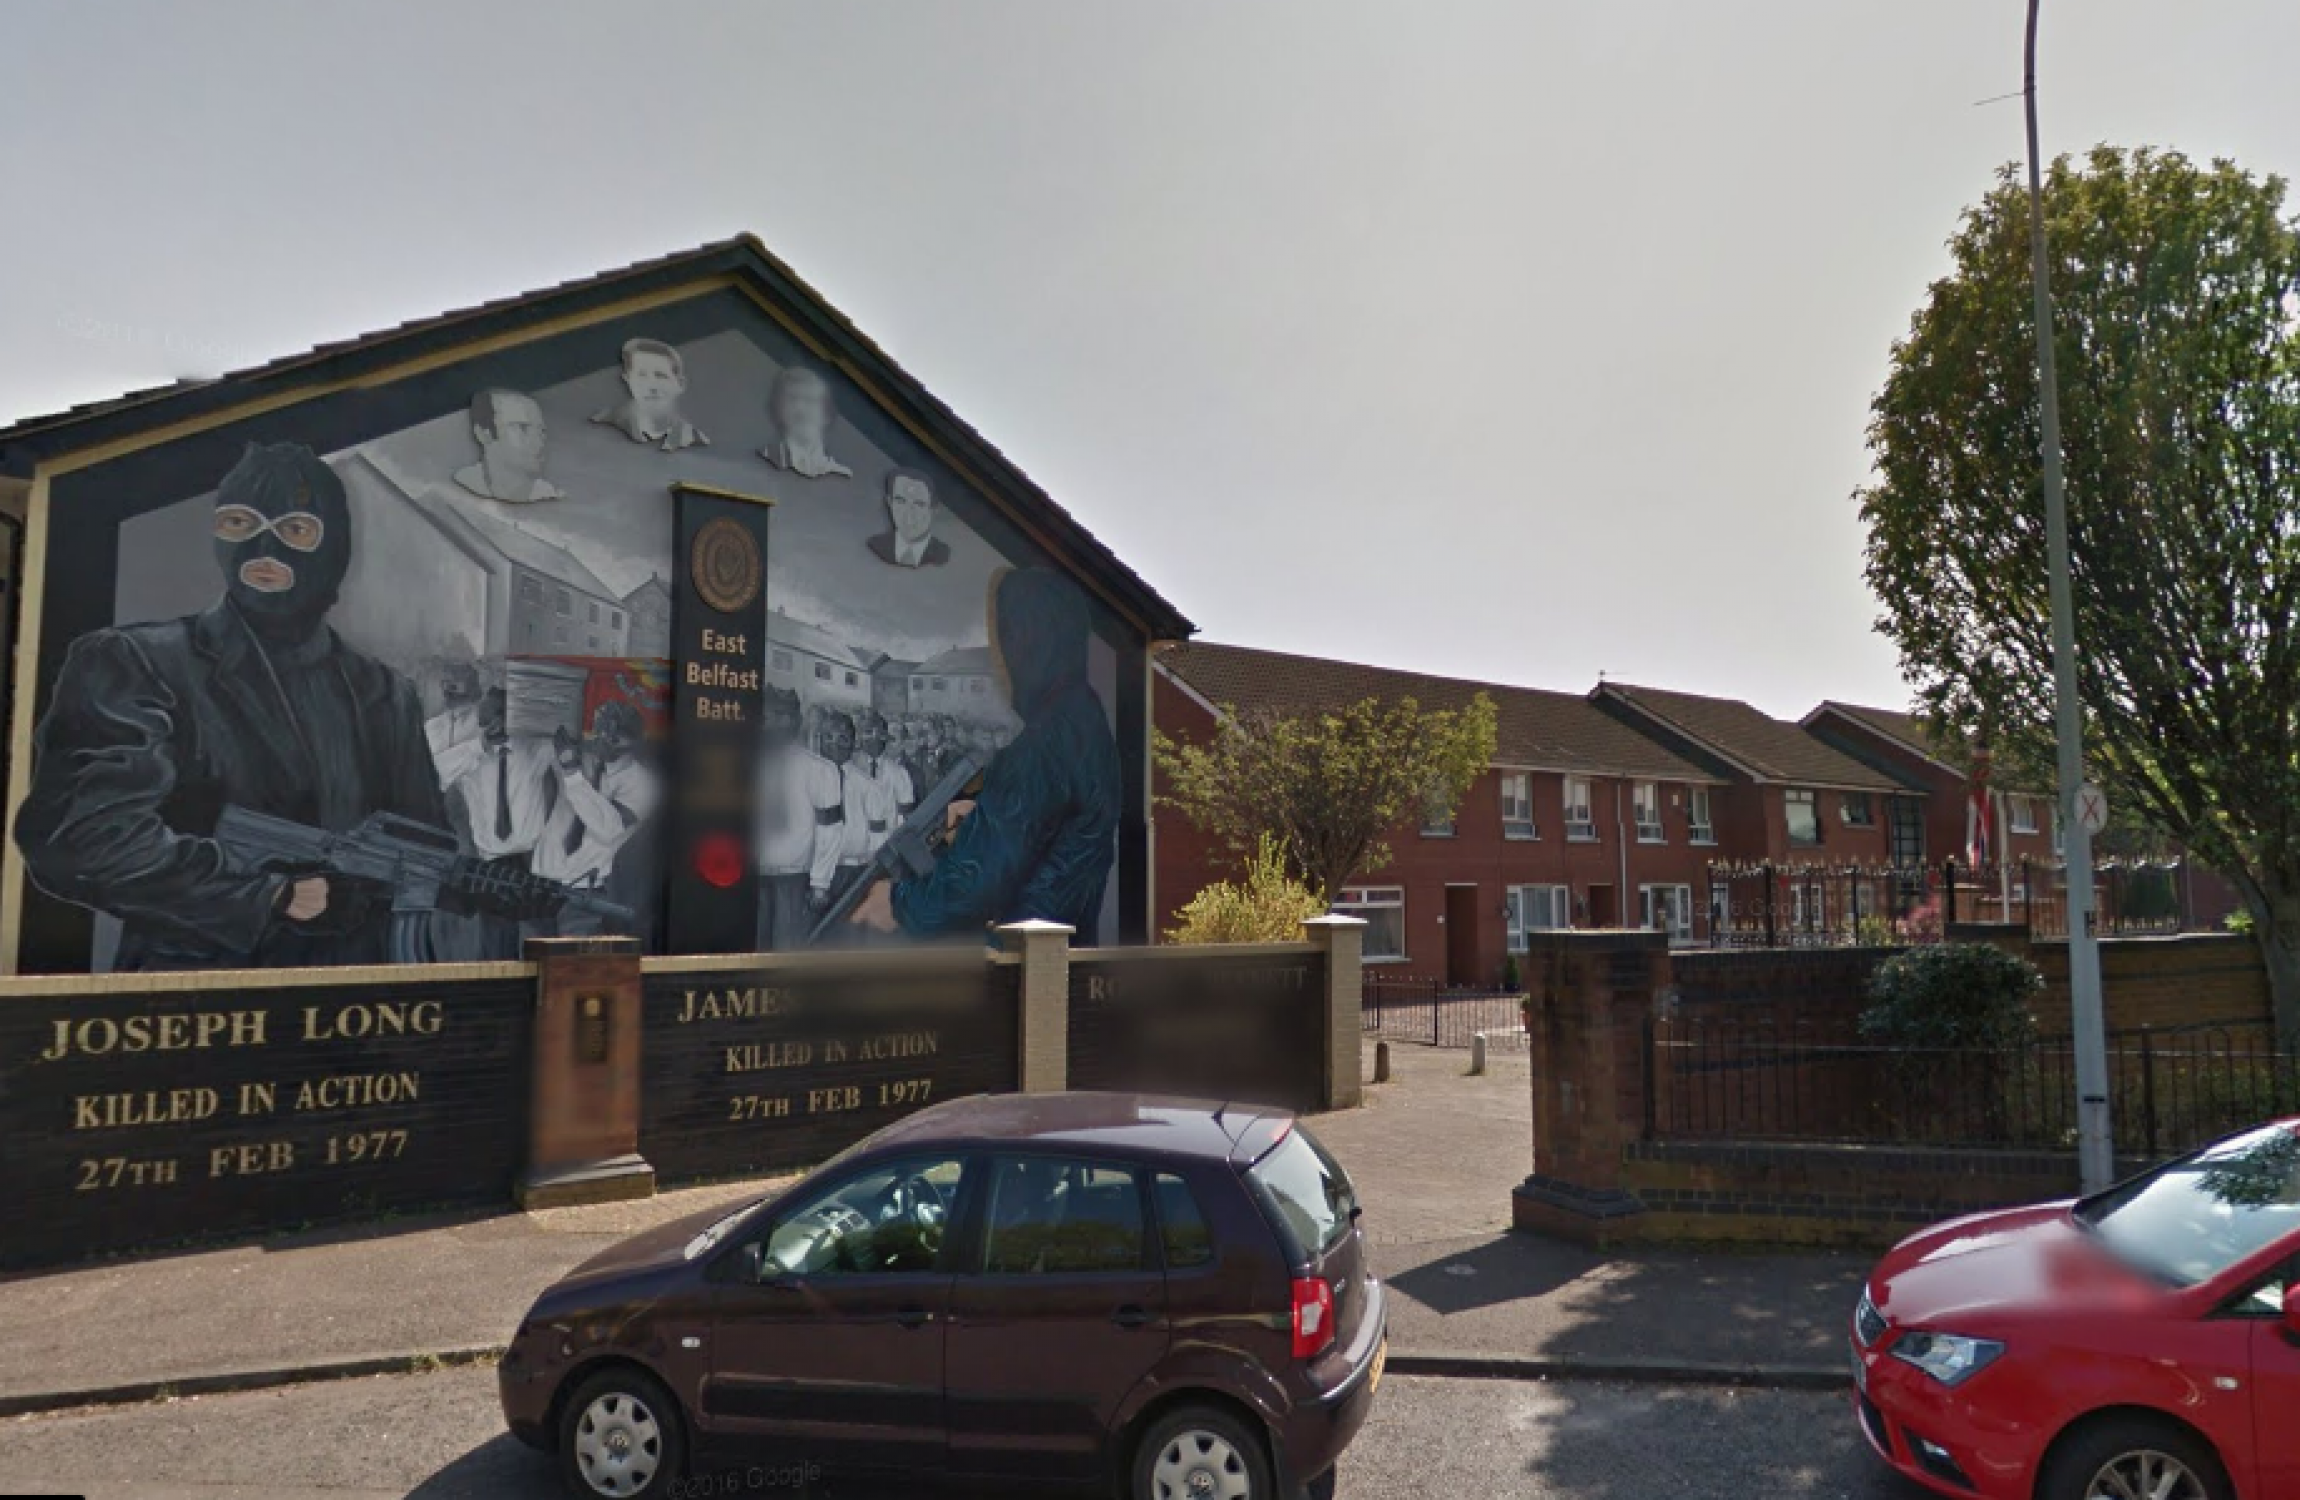 Man arrested following East Belfast 'explosion'